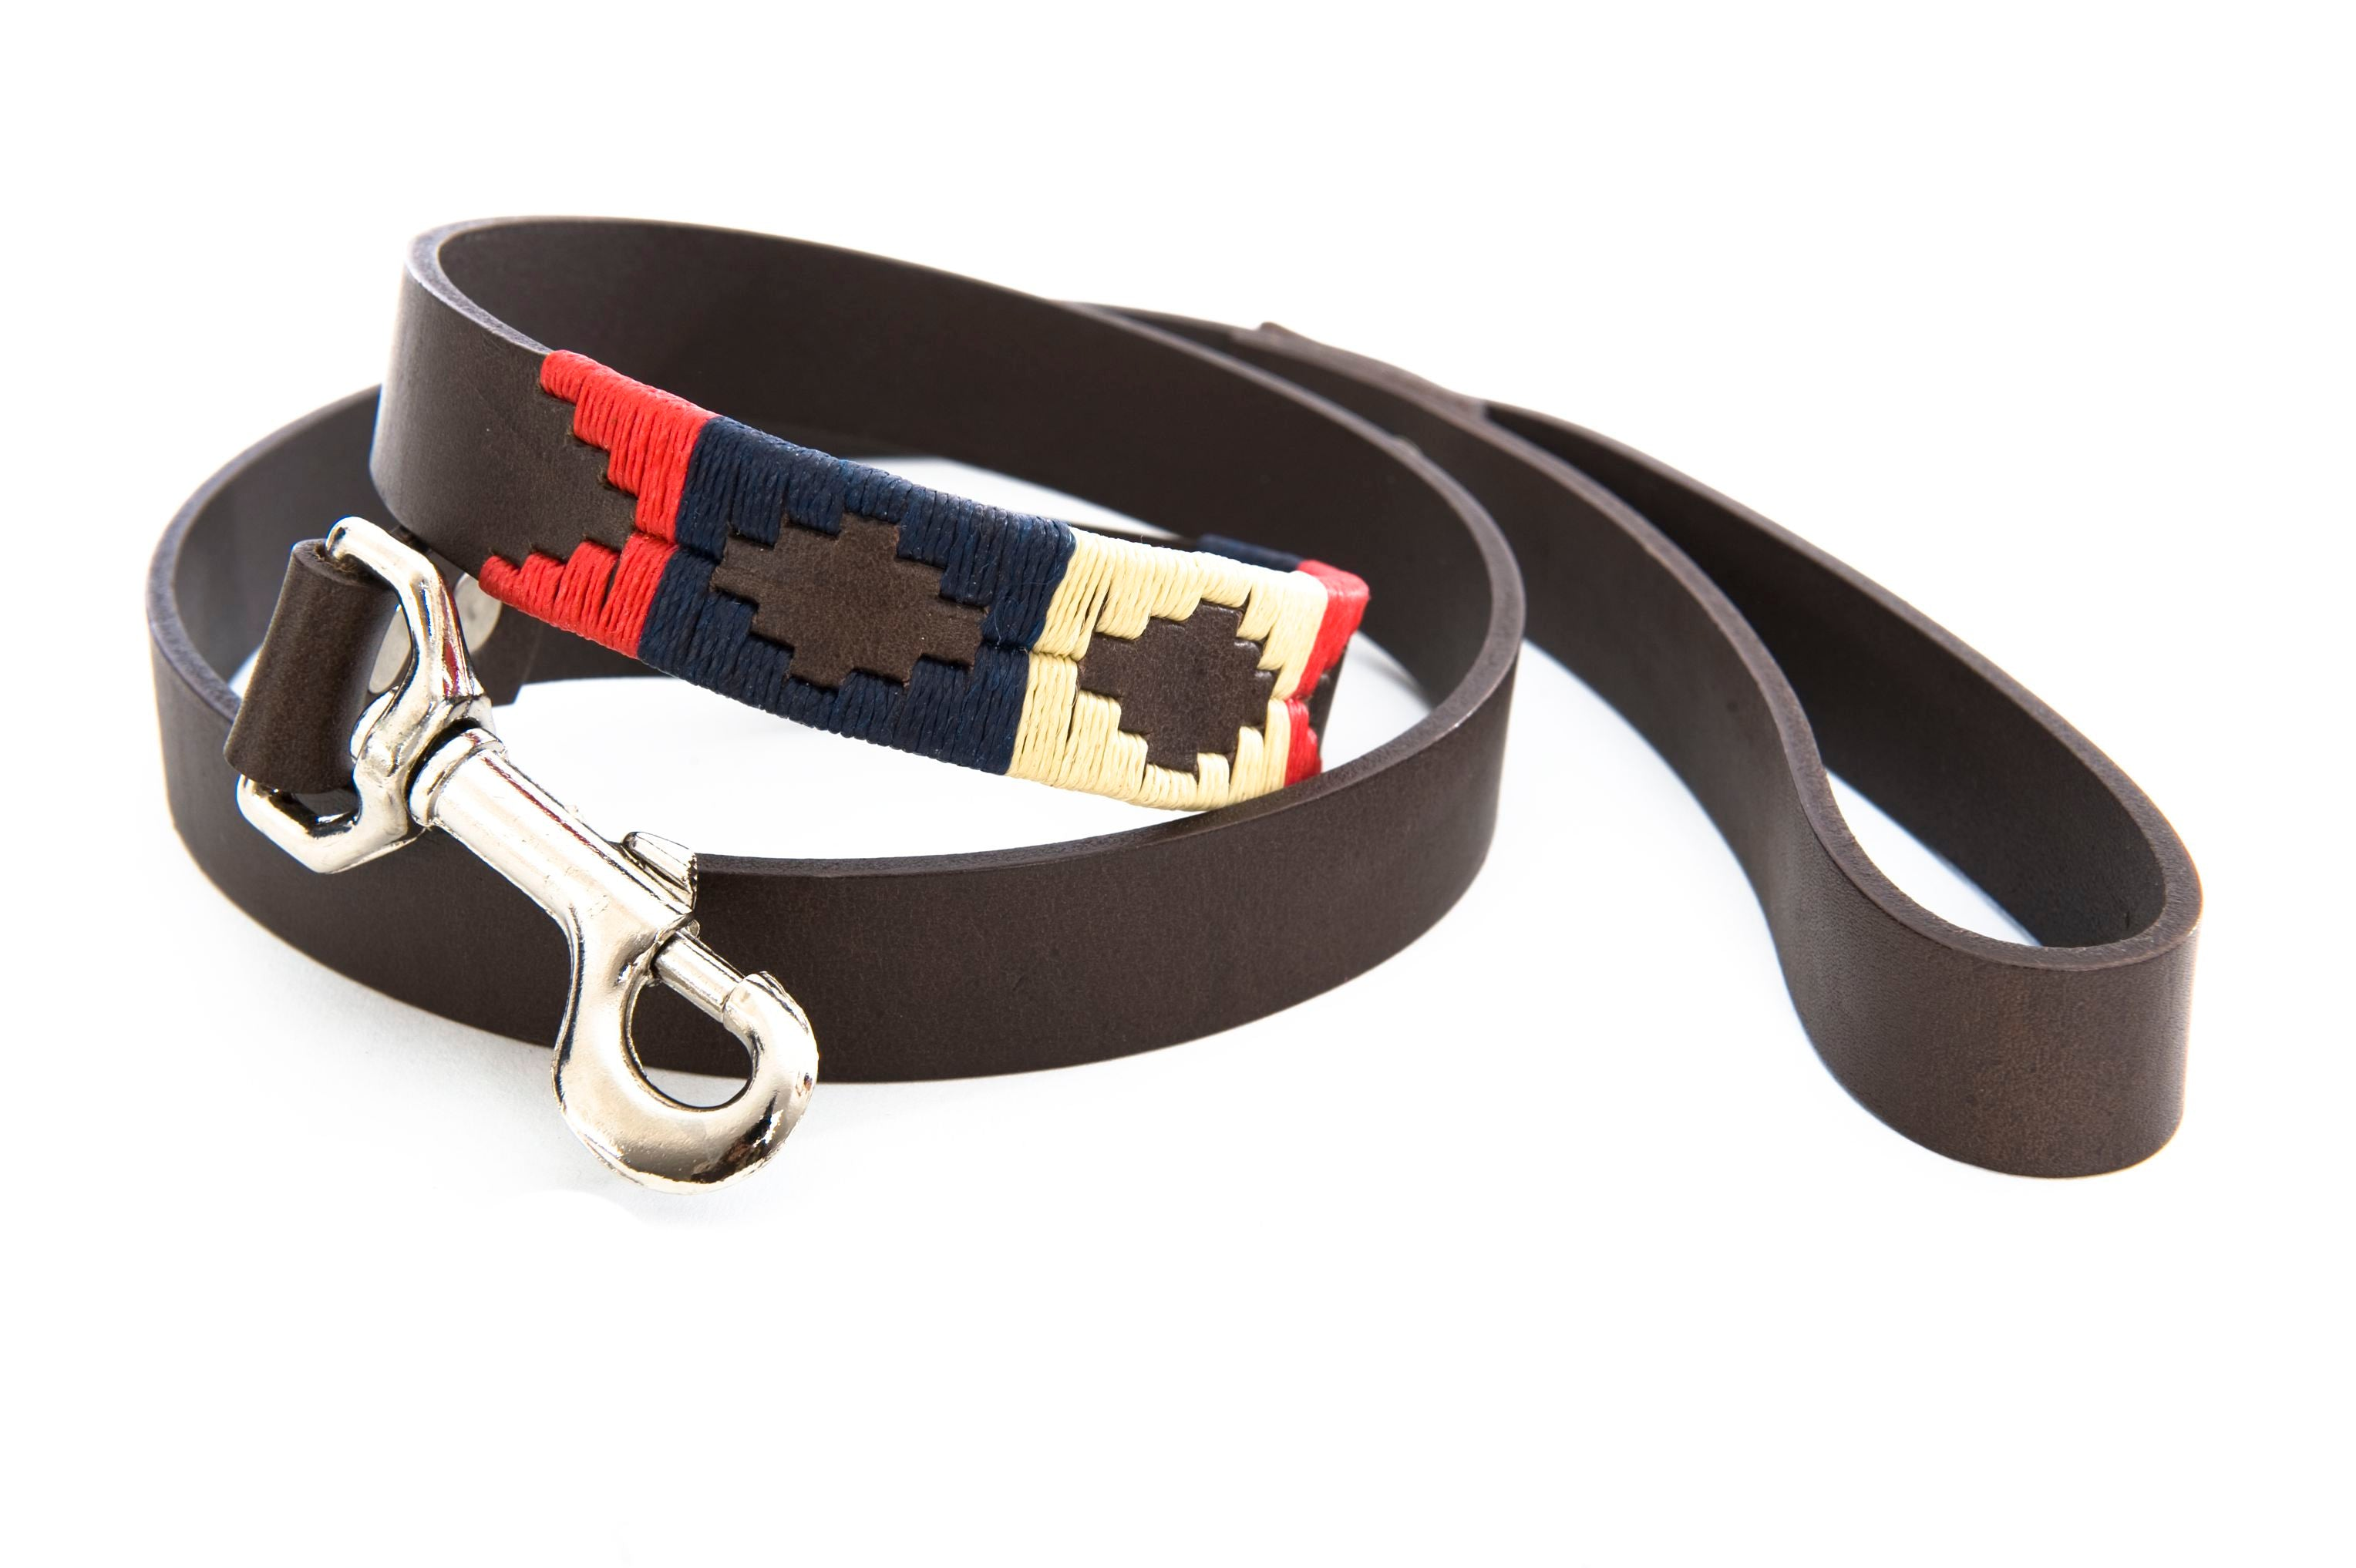 Pioneros Brown Polo Belt Style Dog Lead in Navy/Cream/Red